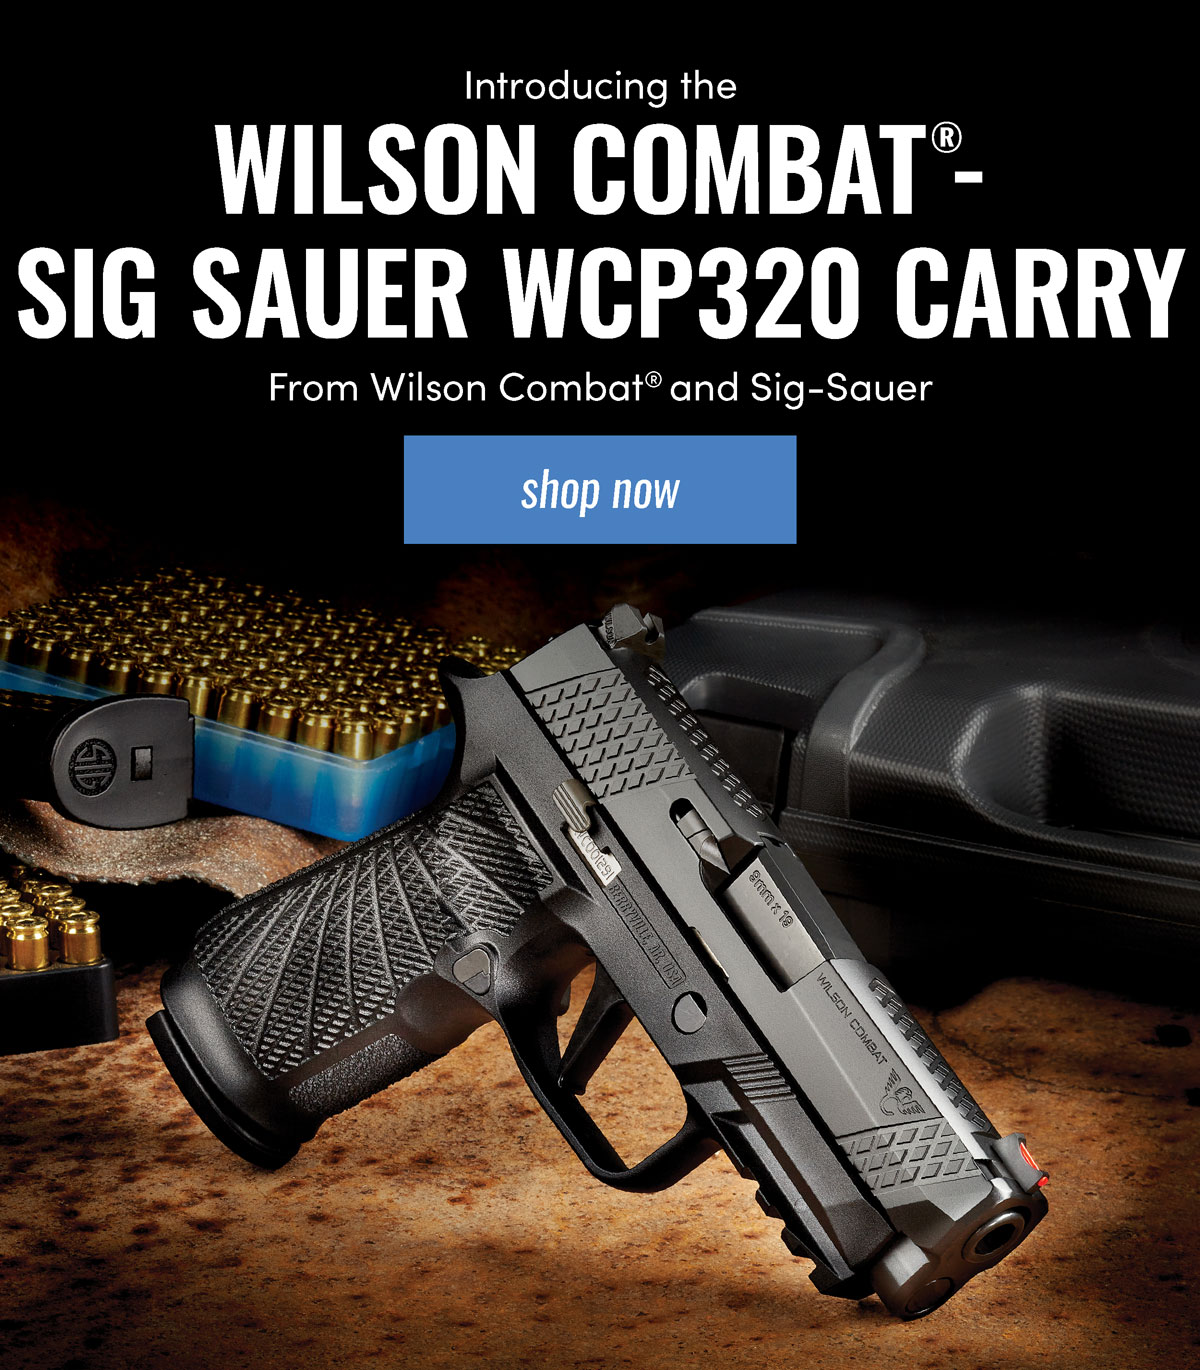 Wilson Combat ®- WCP320 carry, From Wilson Combat® and Sig-Sauer